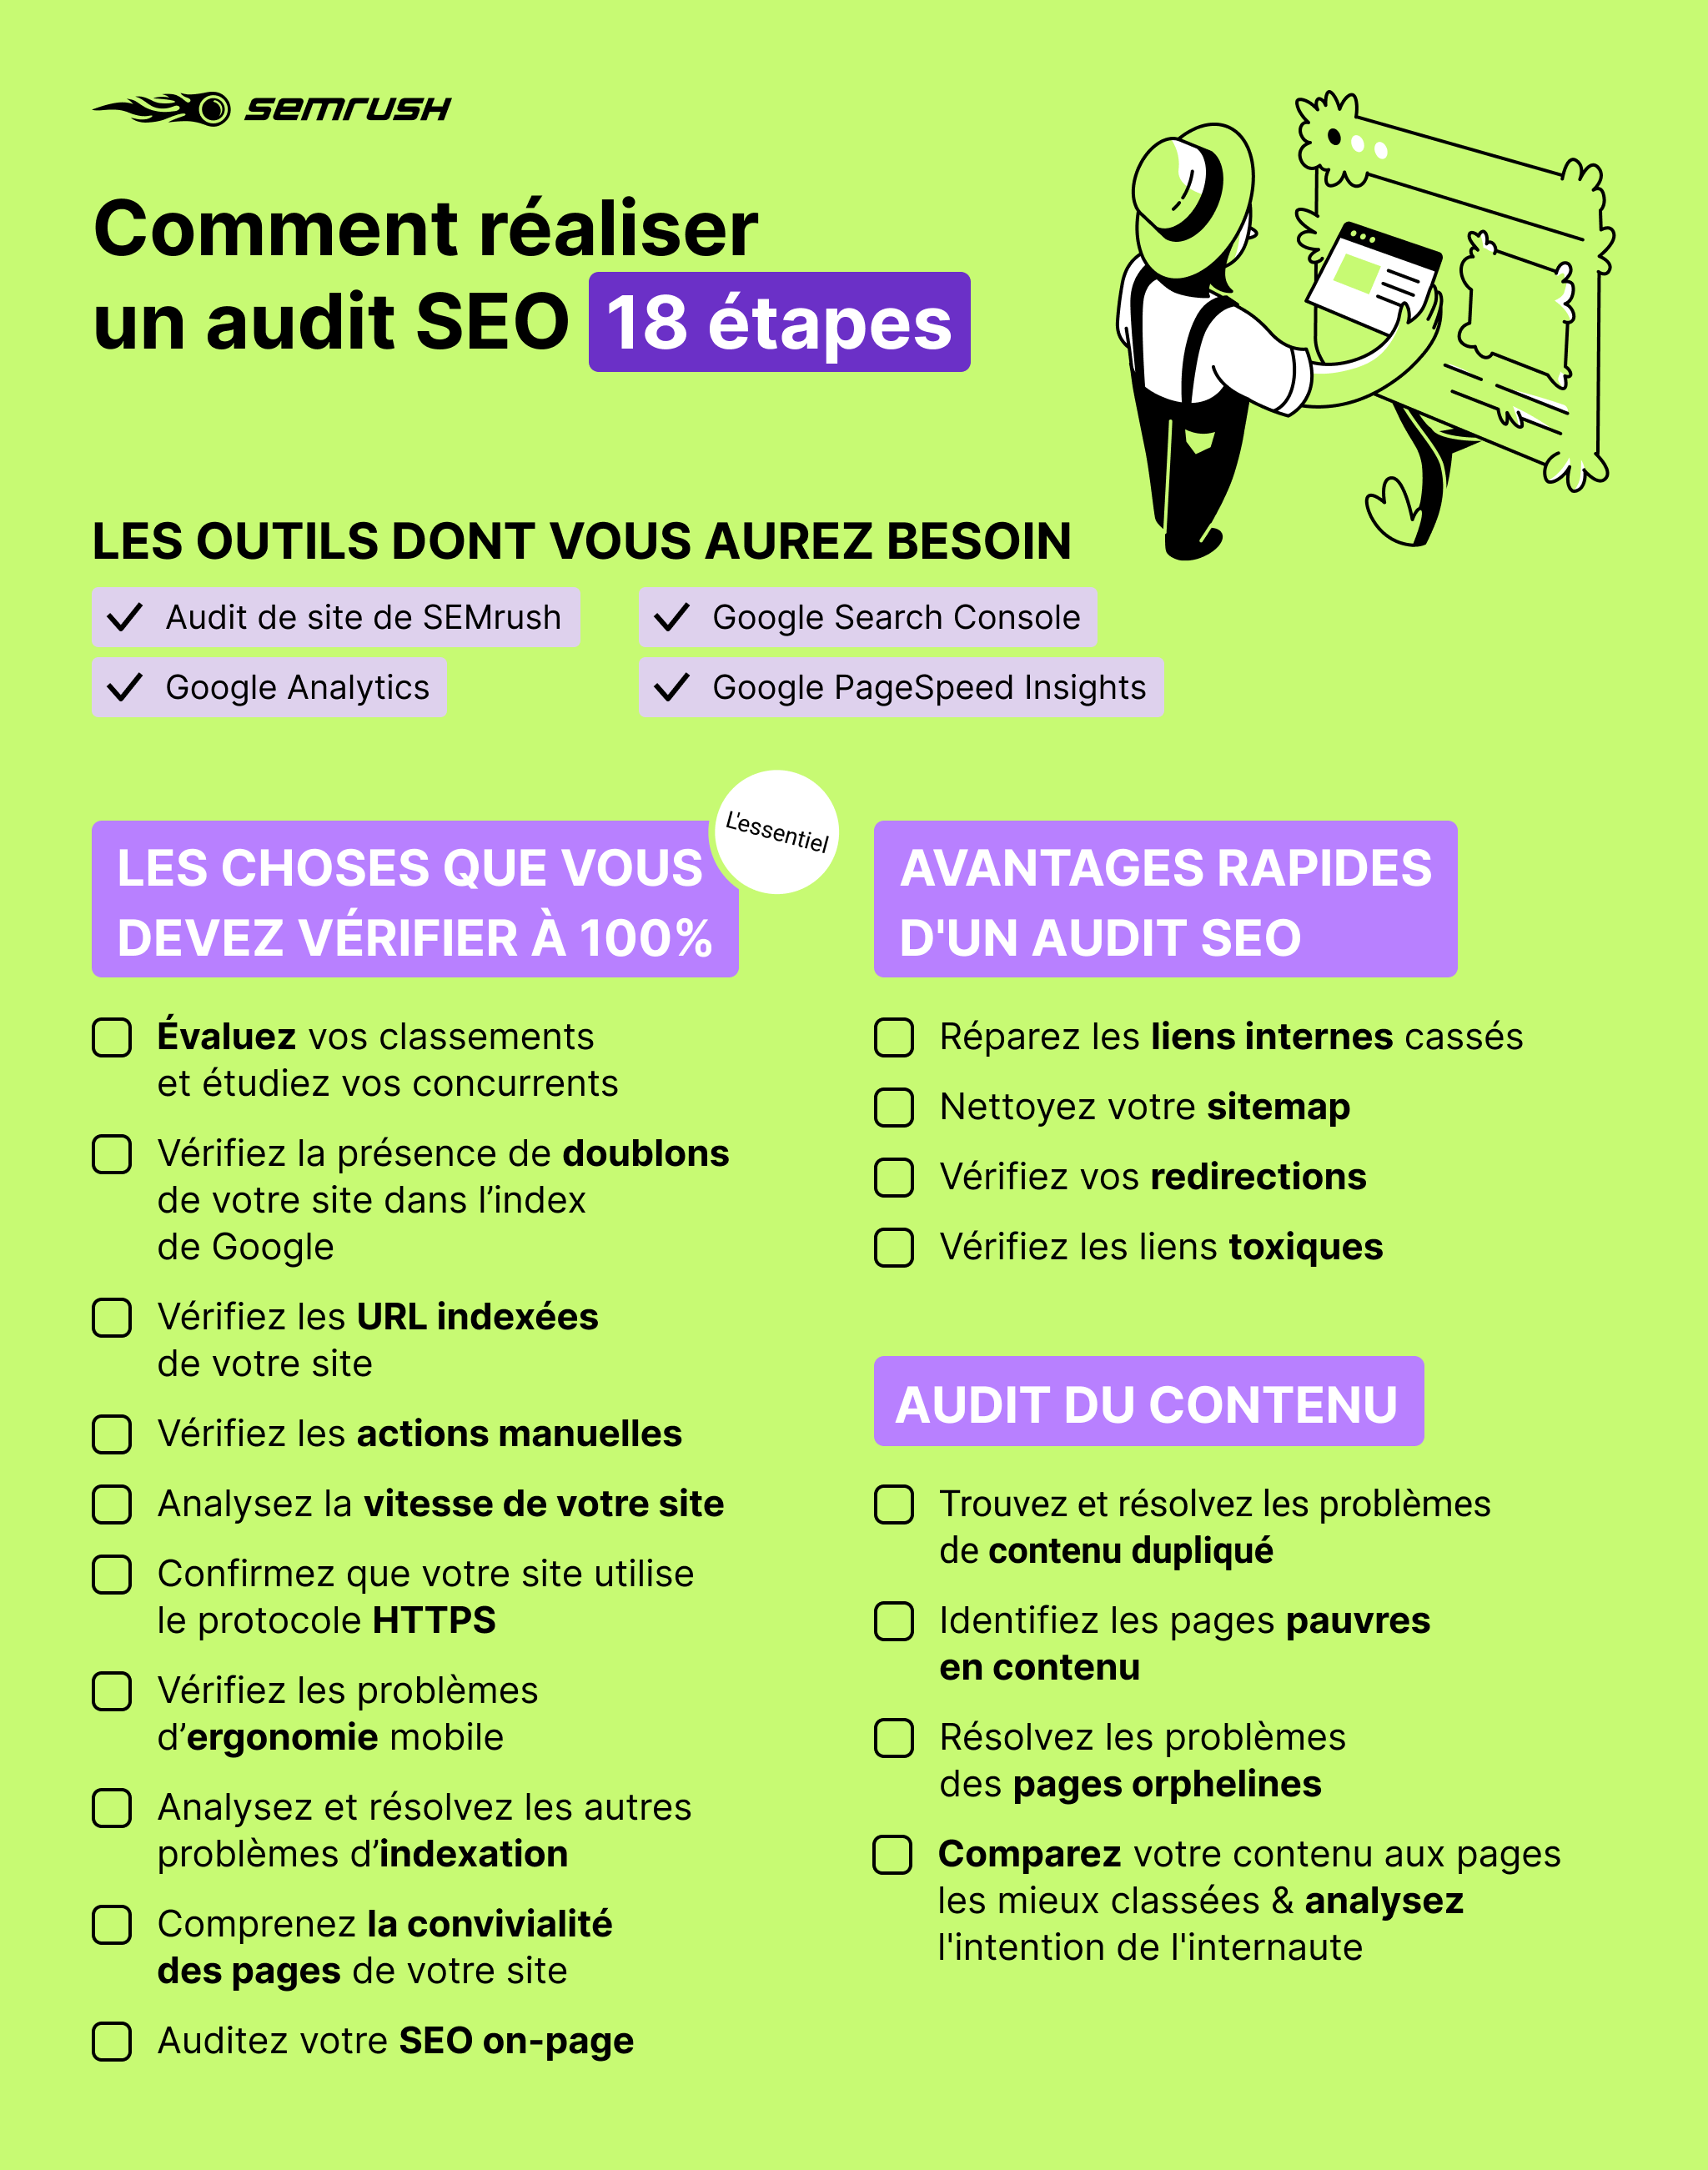 Comment réaliser un audit SEO en 18 étapes. Image 3